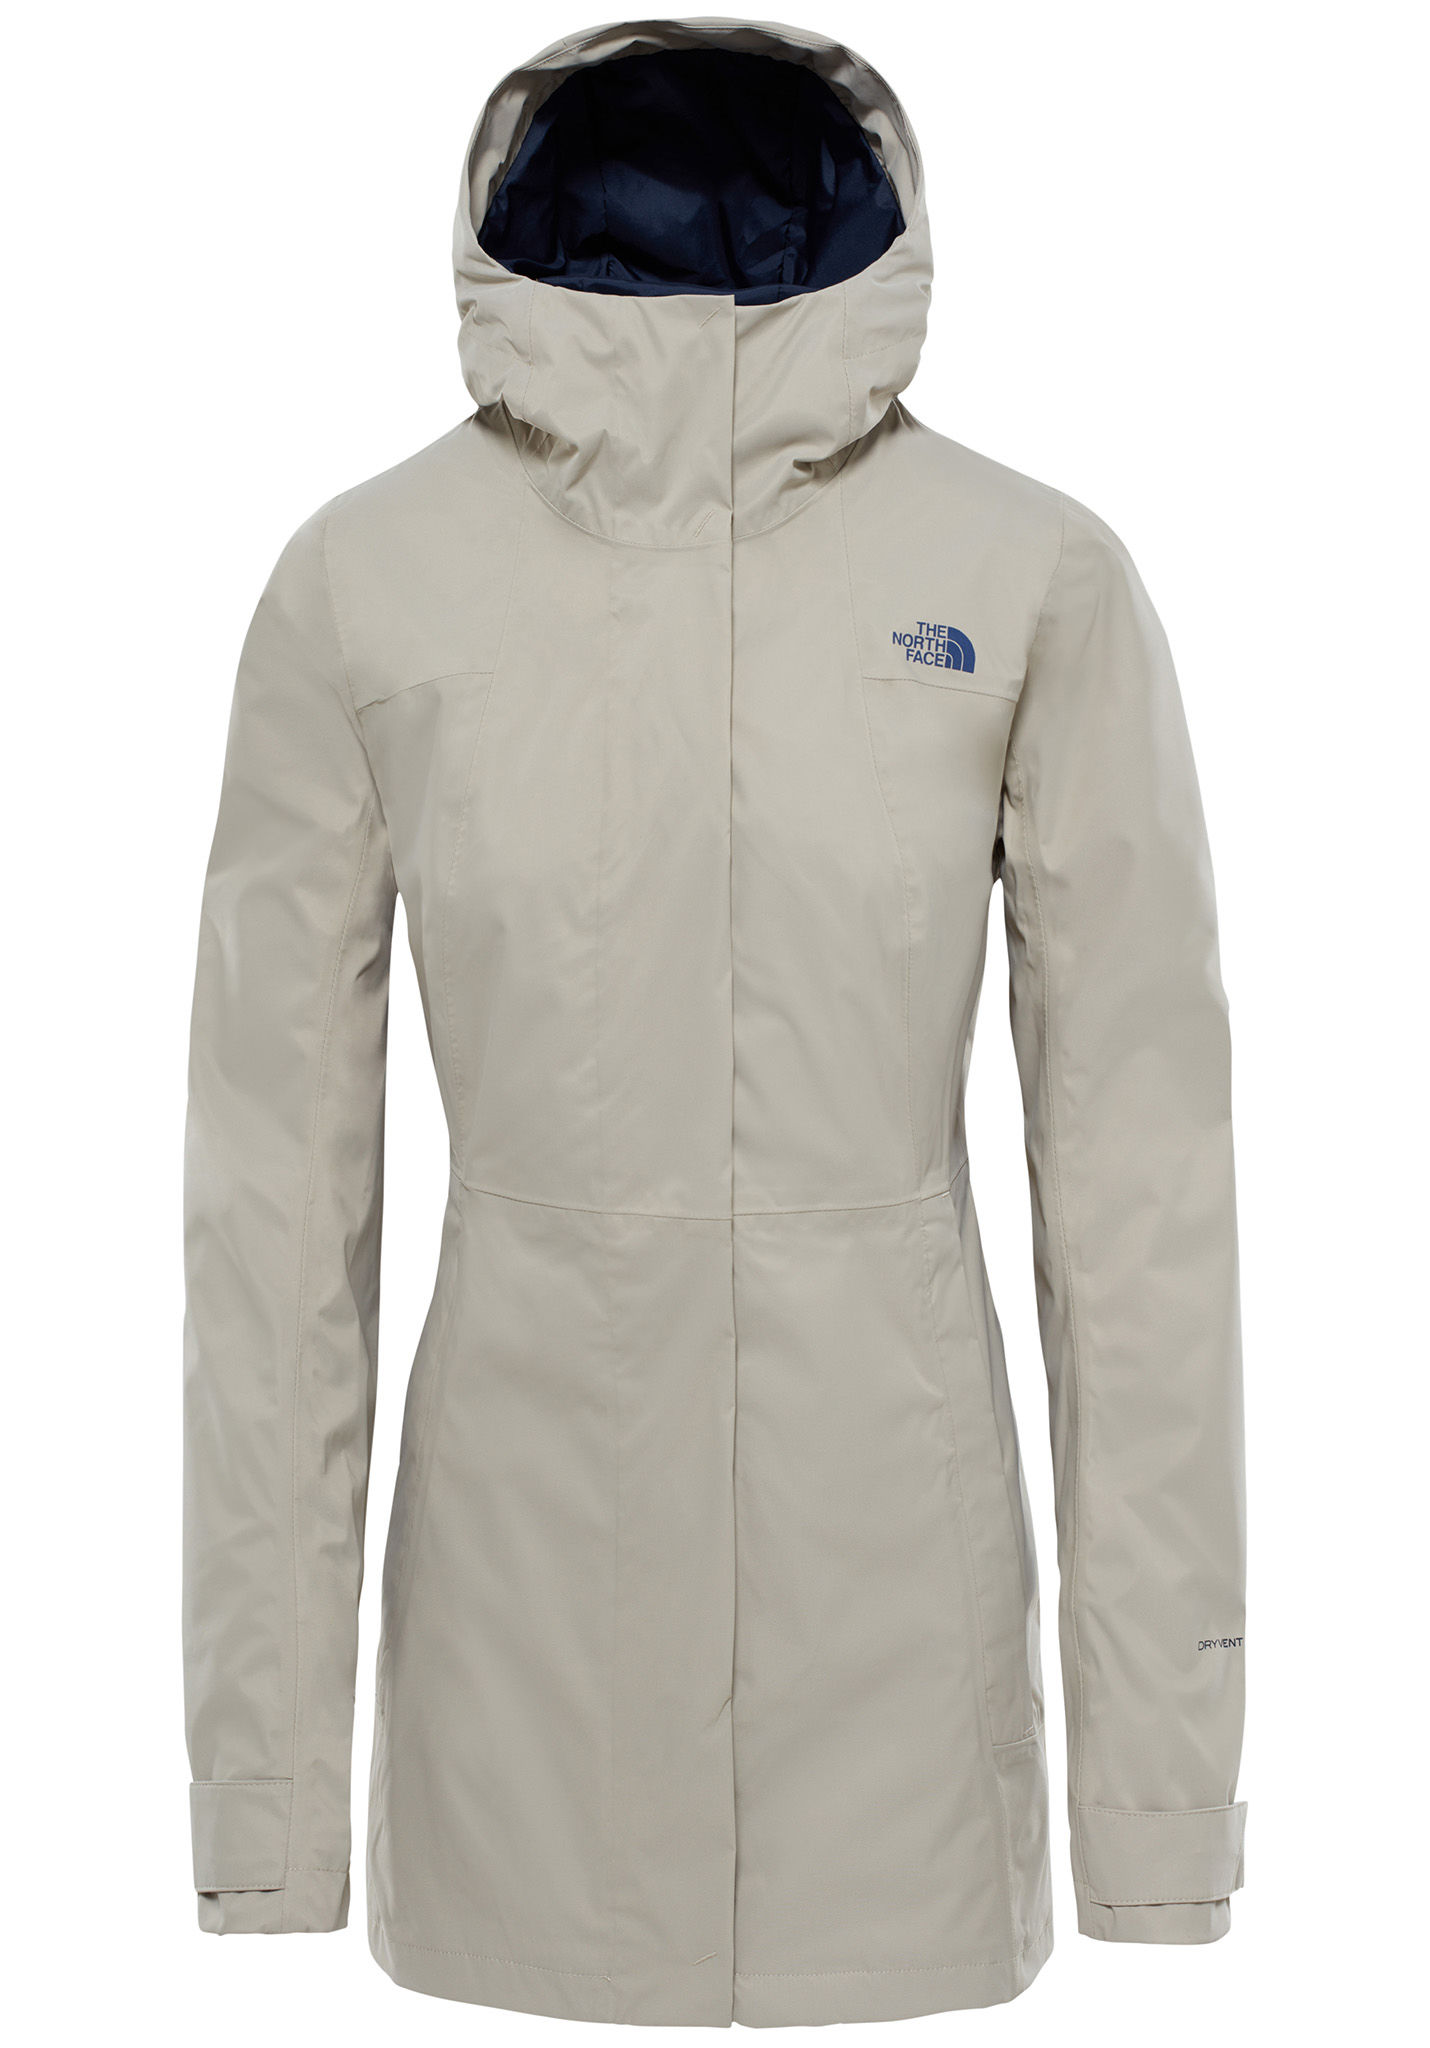 4192ddf827 THE NORTH FACE City Midi Trench - Coat for Women - Beige - Planet Sports